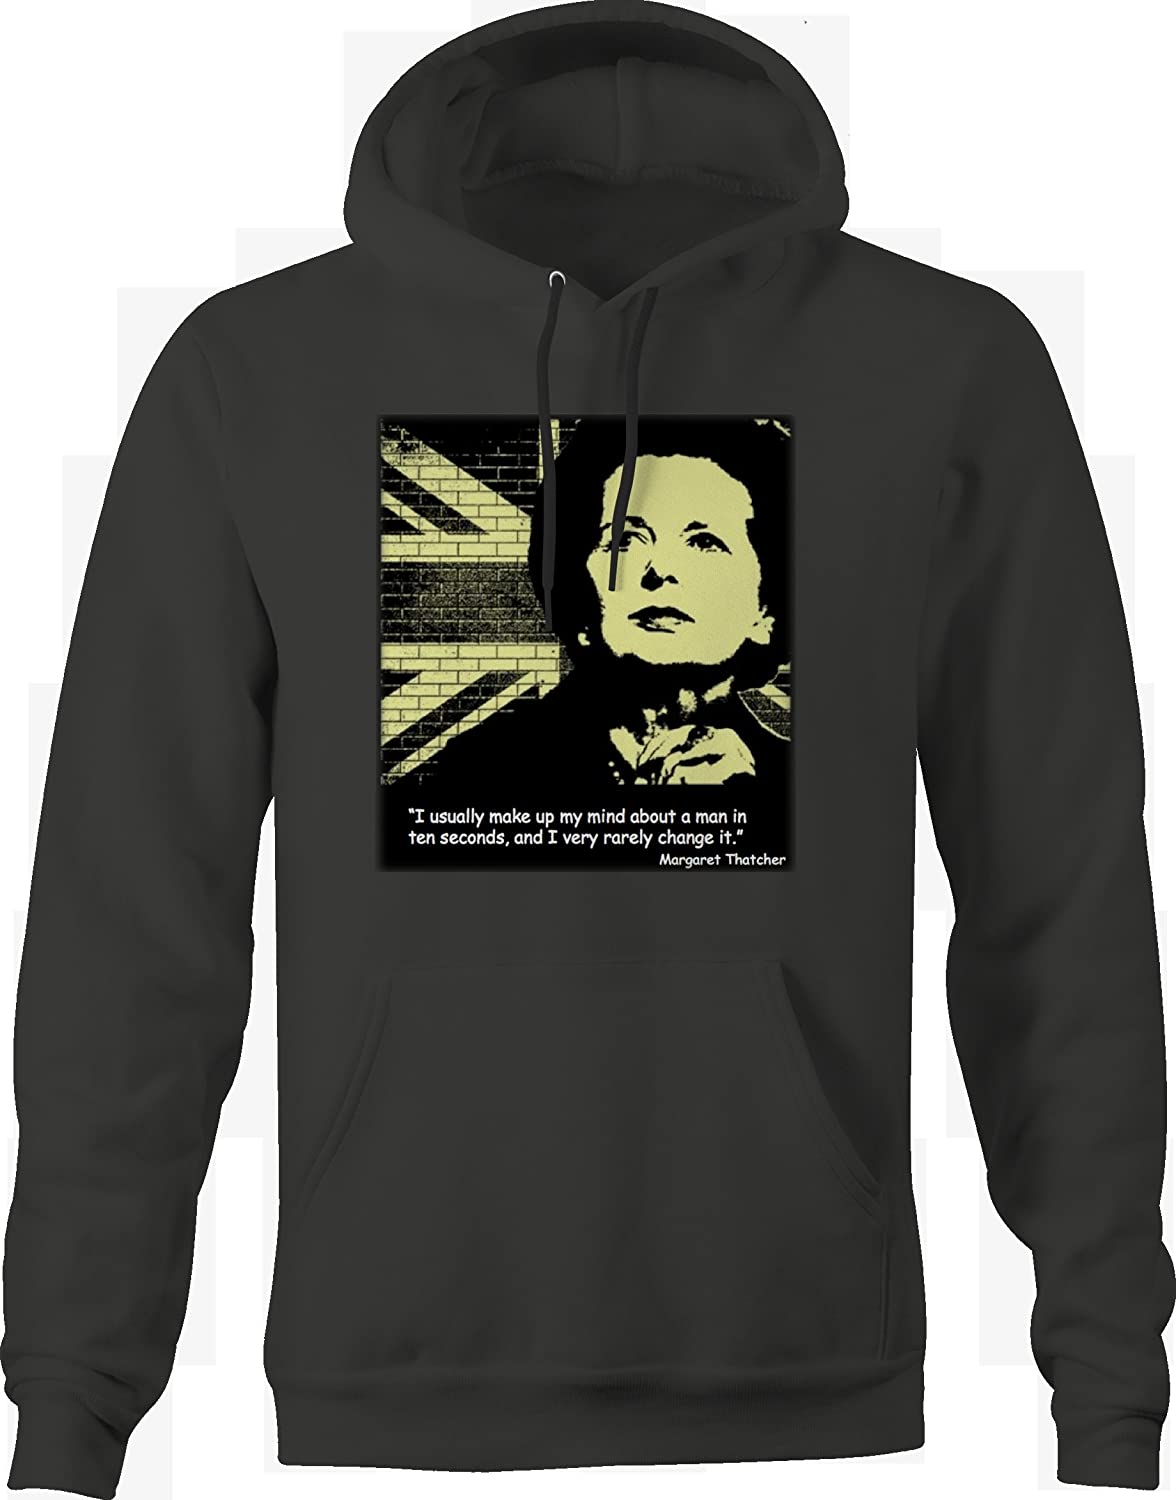 Bold Imprints Margaret Thatcher Make up My Mind About a Man in 10 Seconds Woman Hoodie for Men